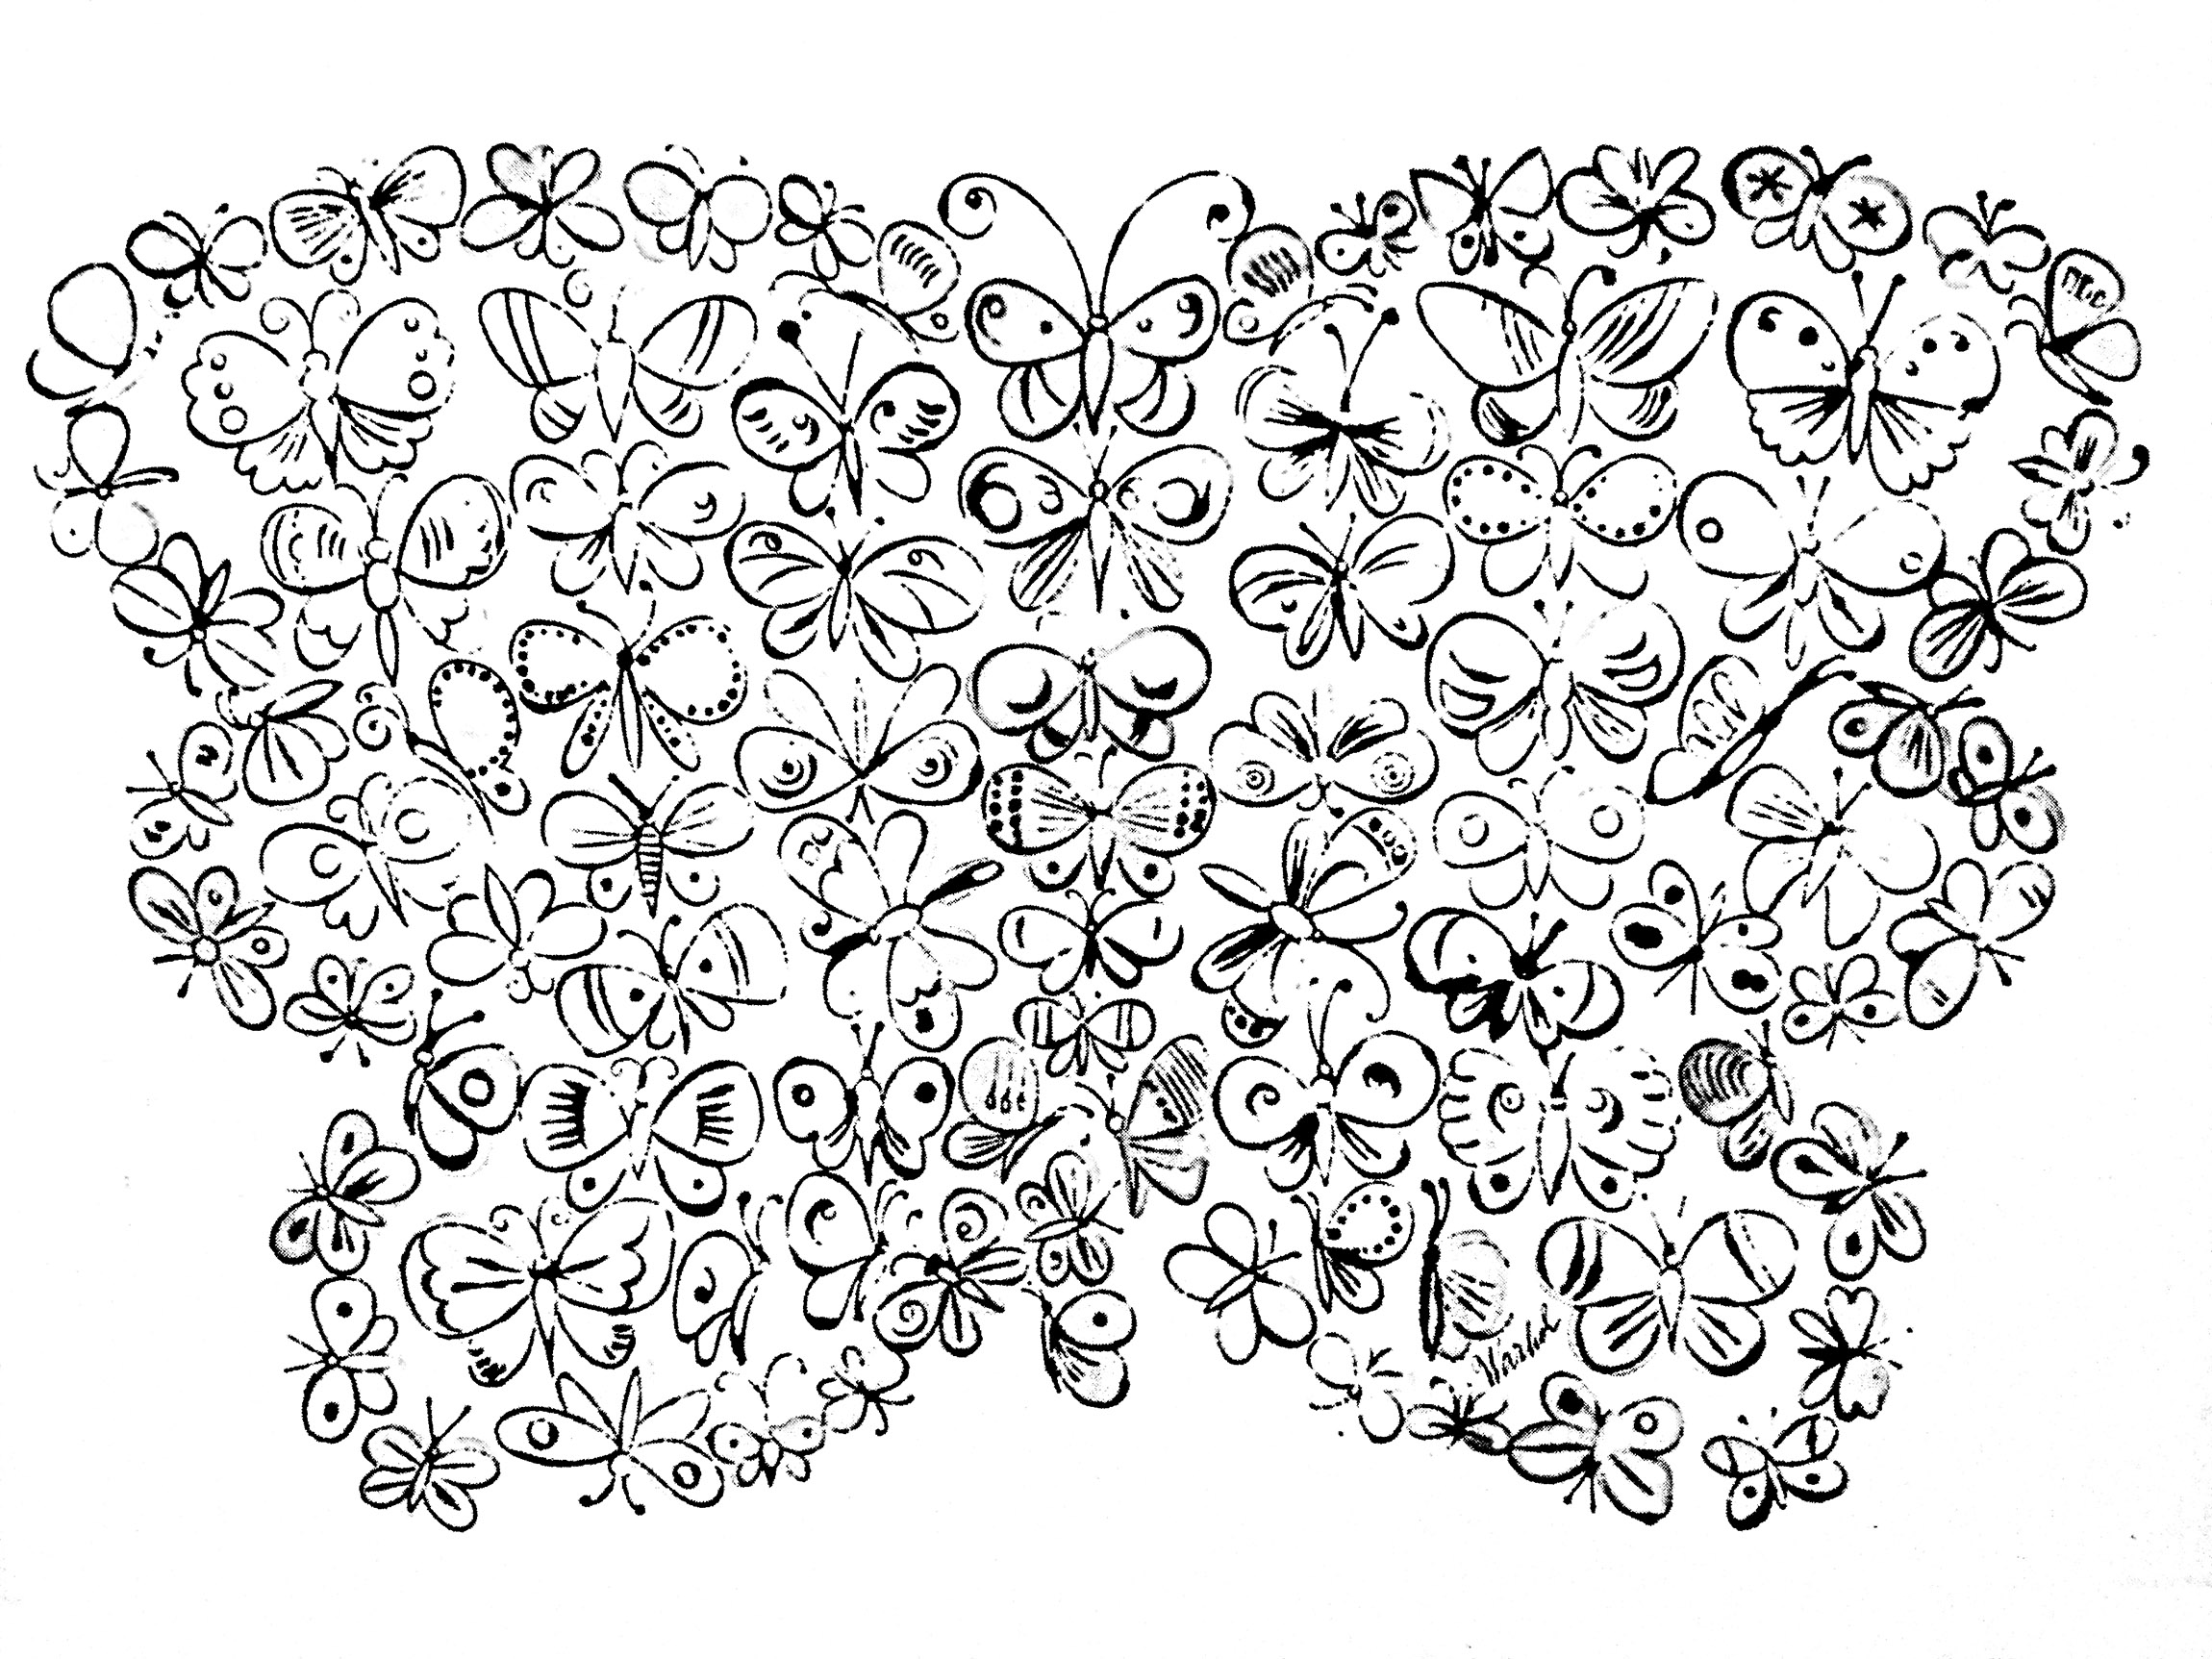 Coloring page inspired by a painting by Andy Warhol with butterflies